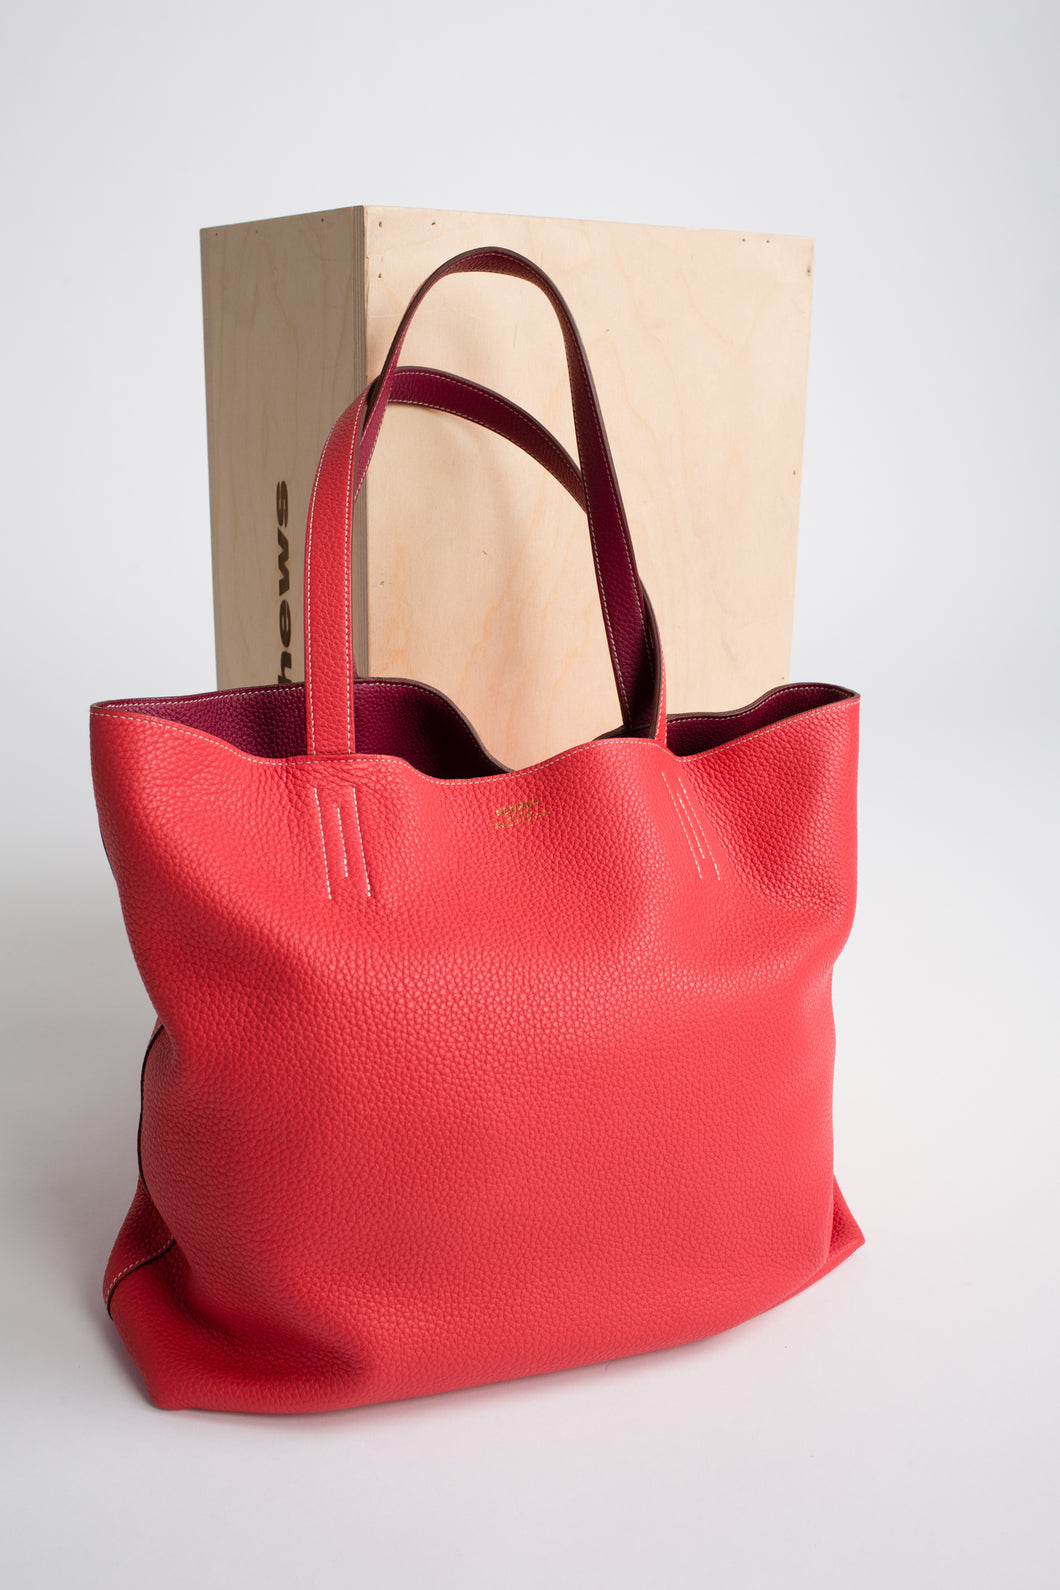 Hermes Double Sens Rose and Cigare Sikkim Leather tote